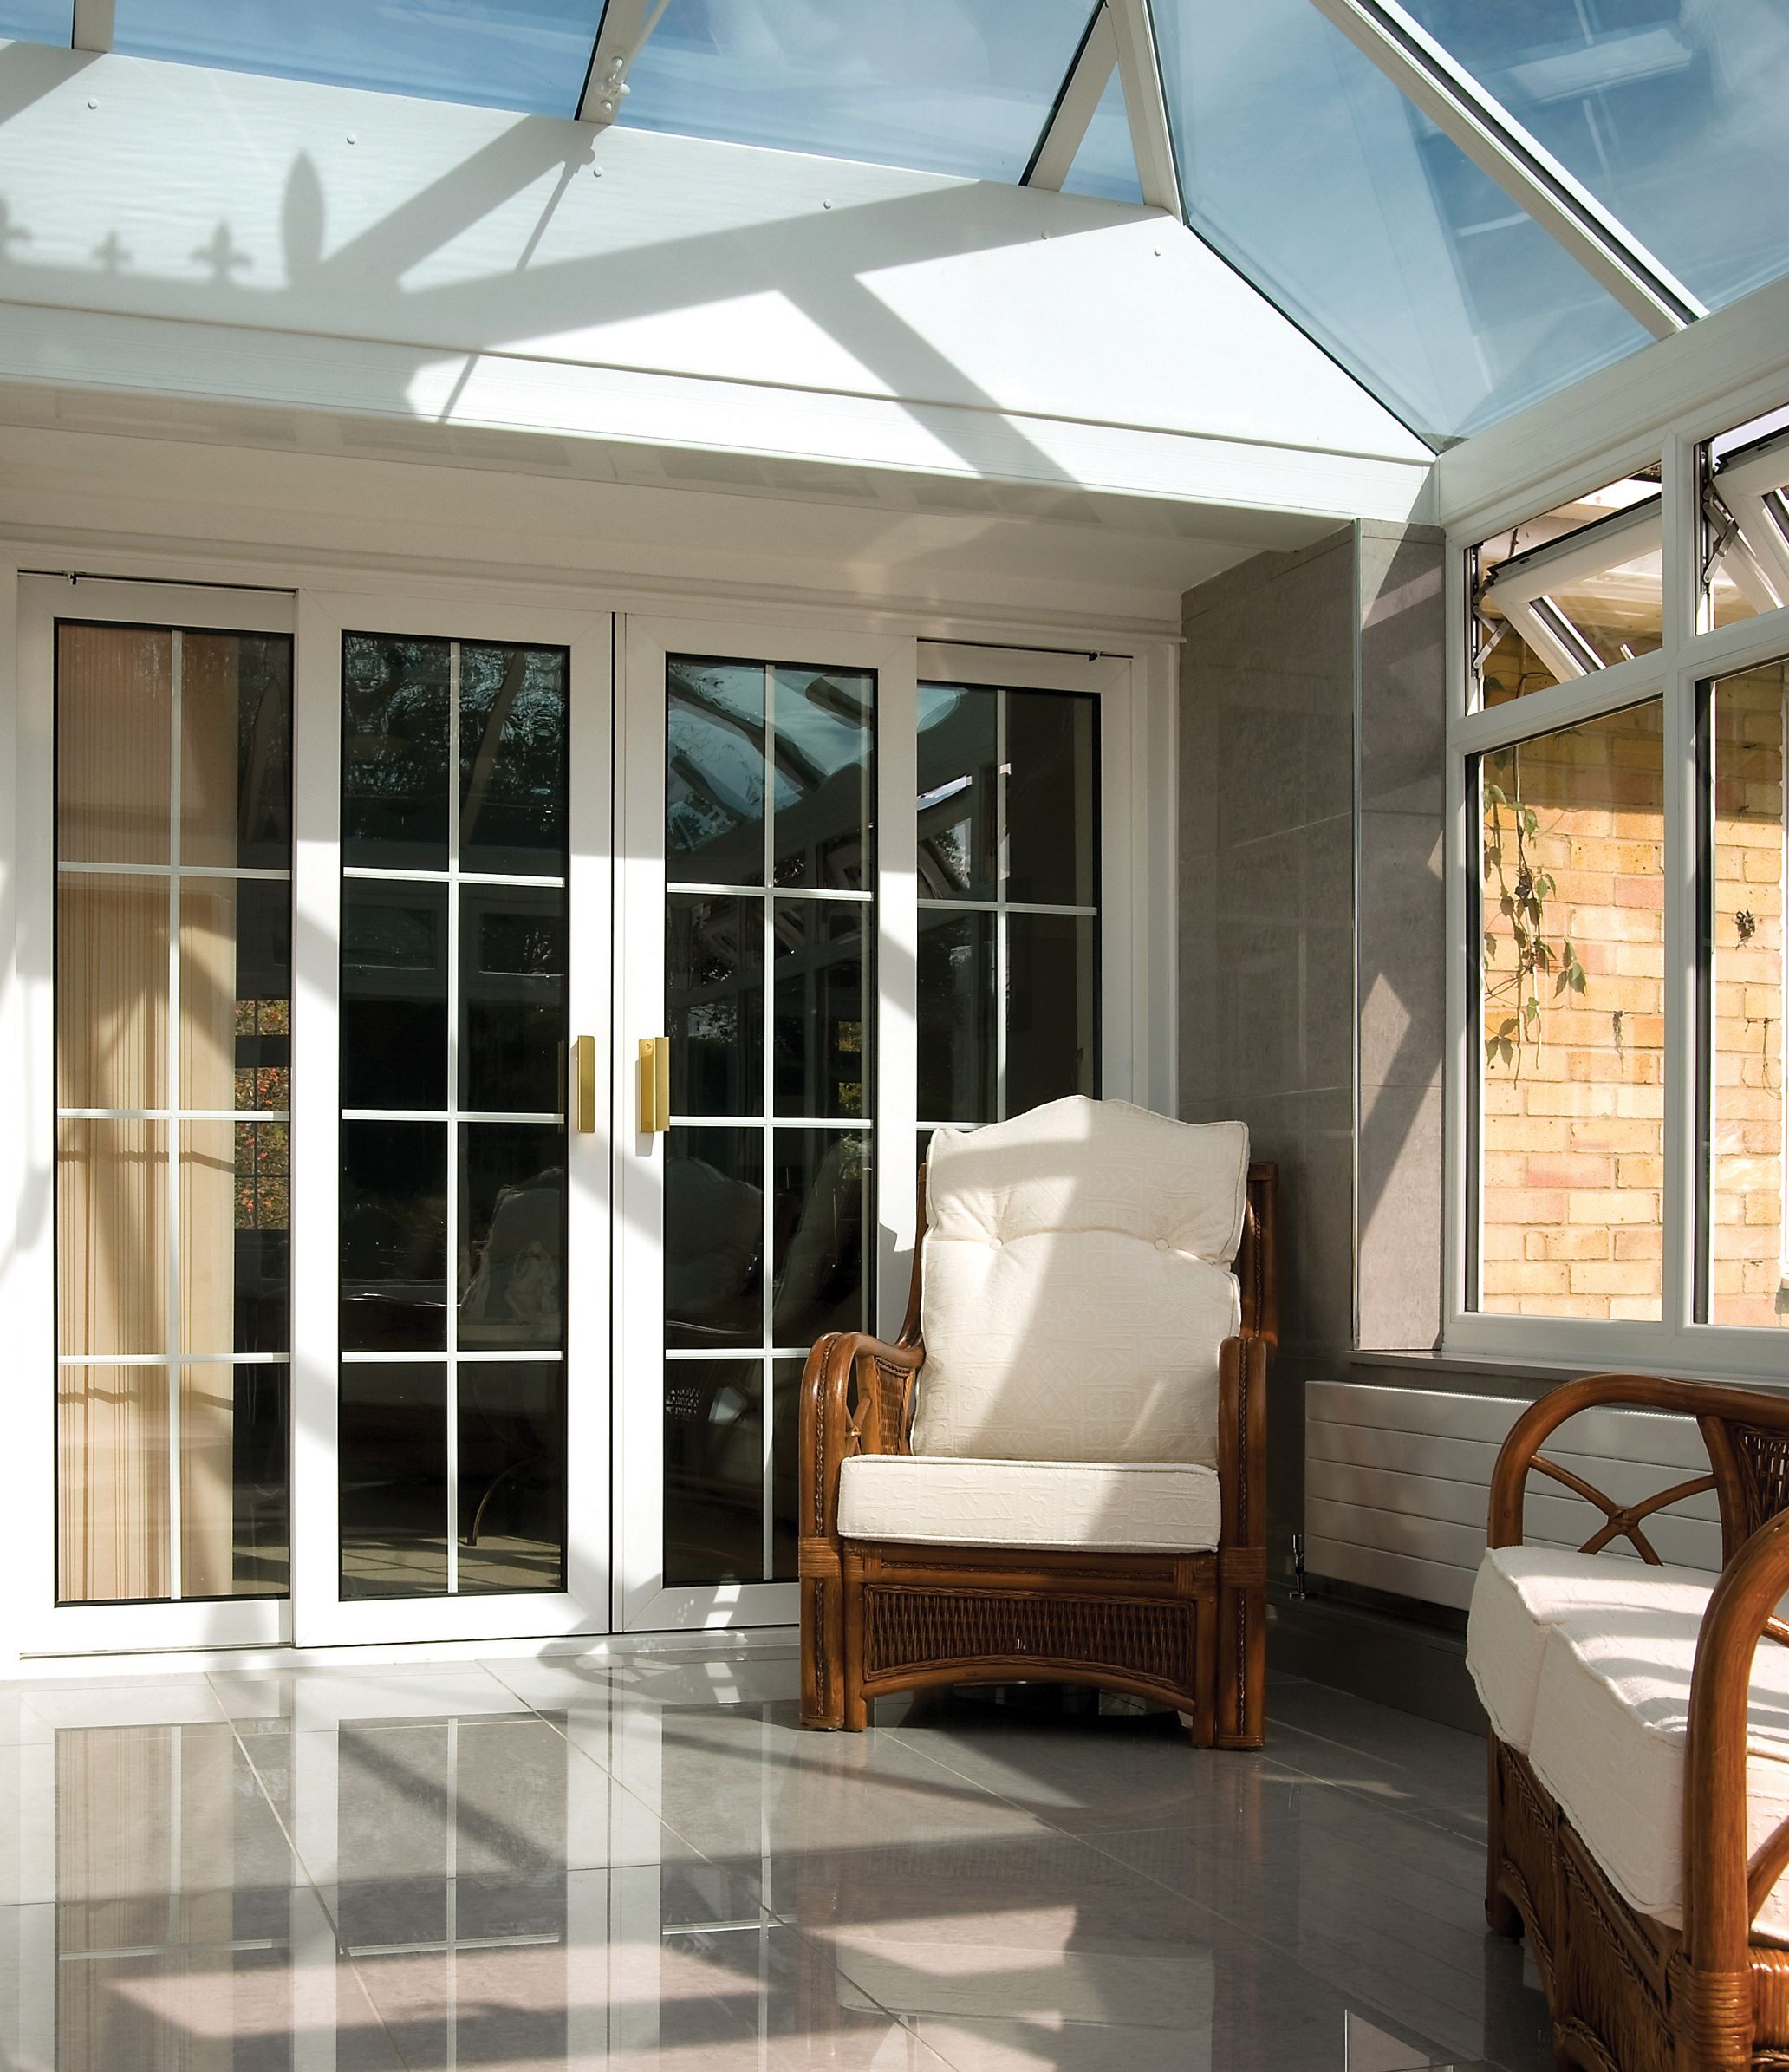 Floor tiles conservatory floor tiles dailygadgetfo Image collections